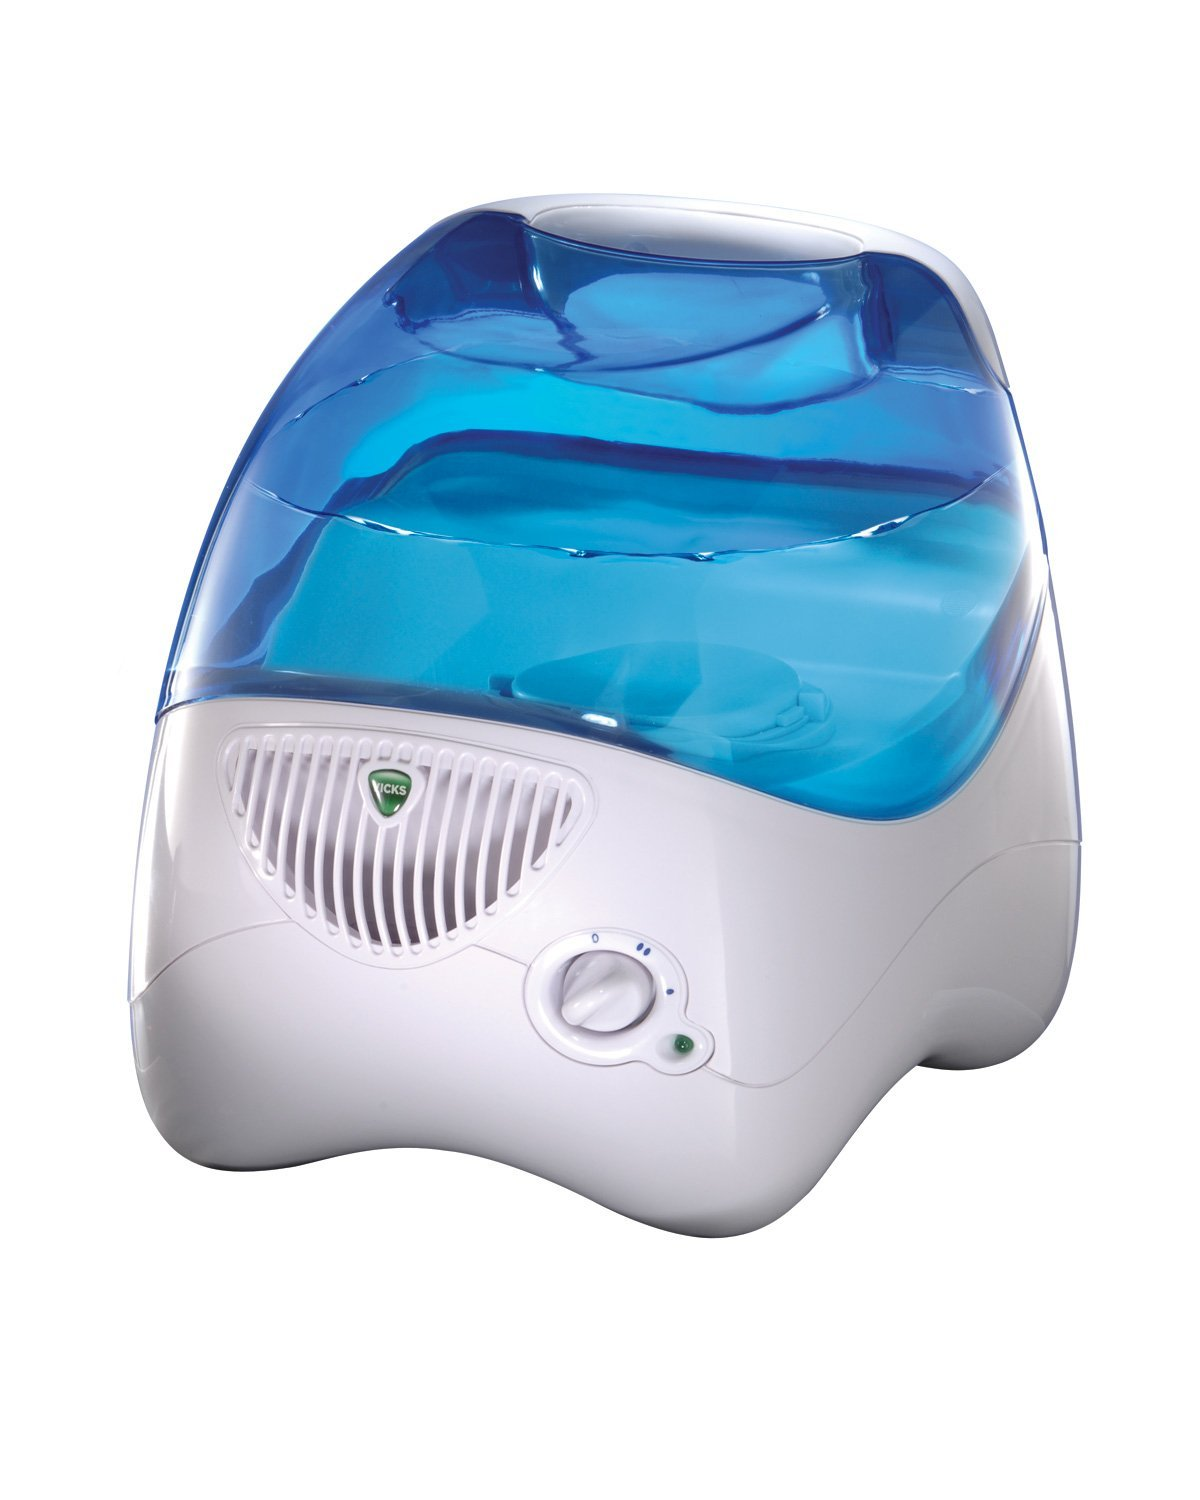 Vicks Cool Mist Humidifier 1 1 2 Gallons Pictures to pin on Pinterest #1C89AF